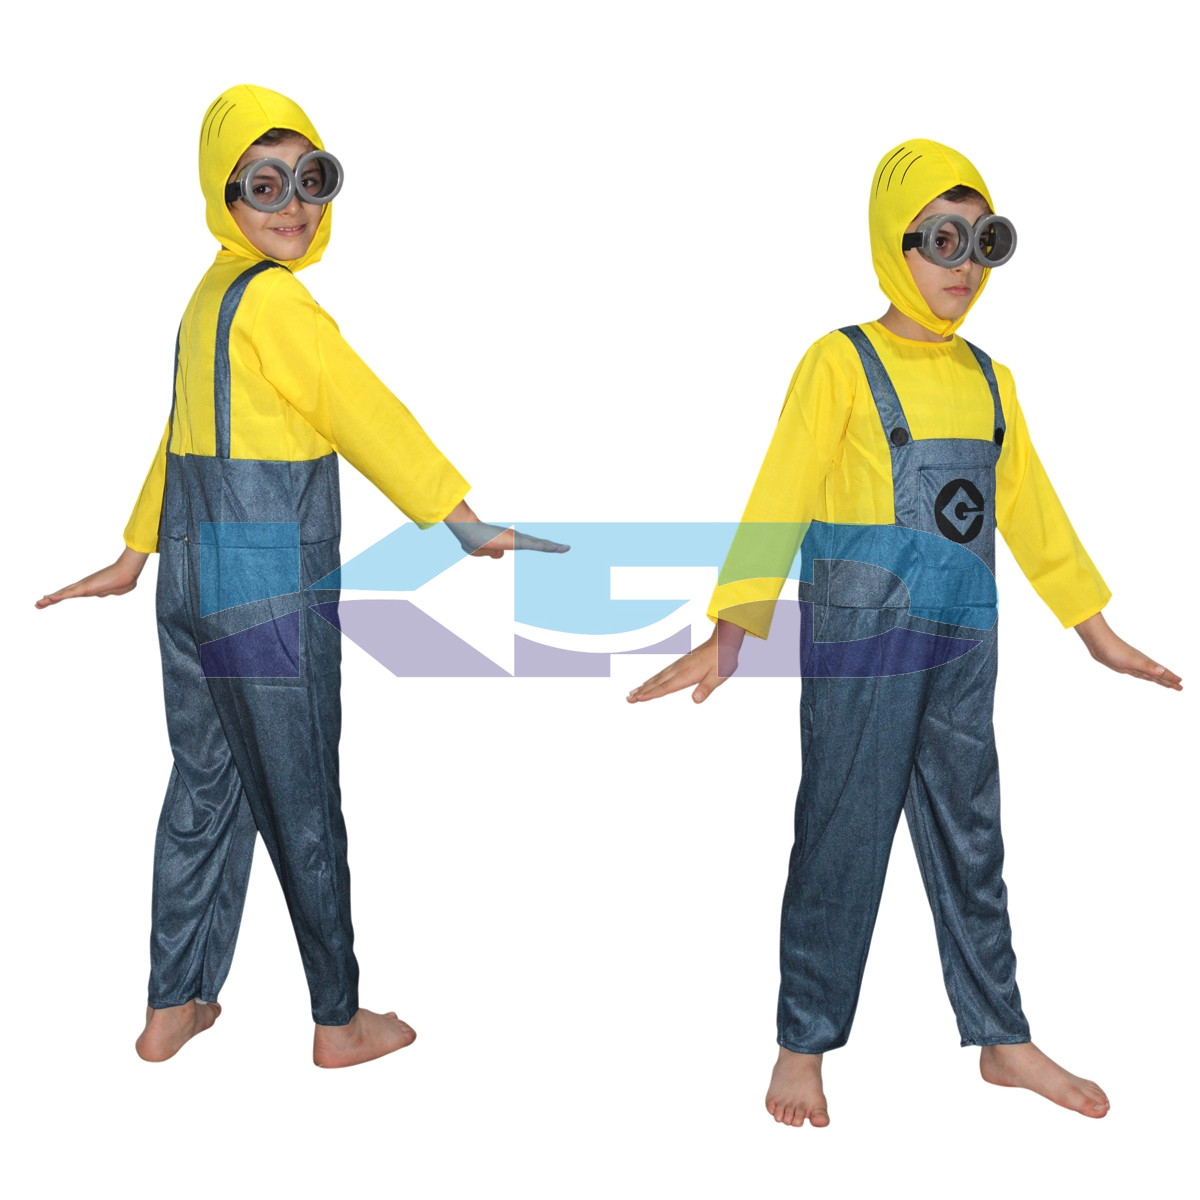 Minnion Fancy dress for kids,Diseny Cartoon Costume for Annual function/Theme Party/Stage Shows/Competition/Birthday Party Dress